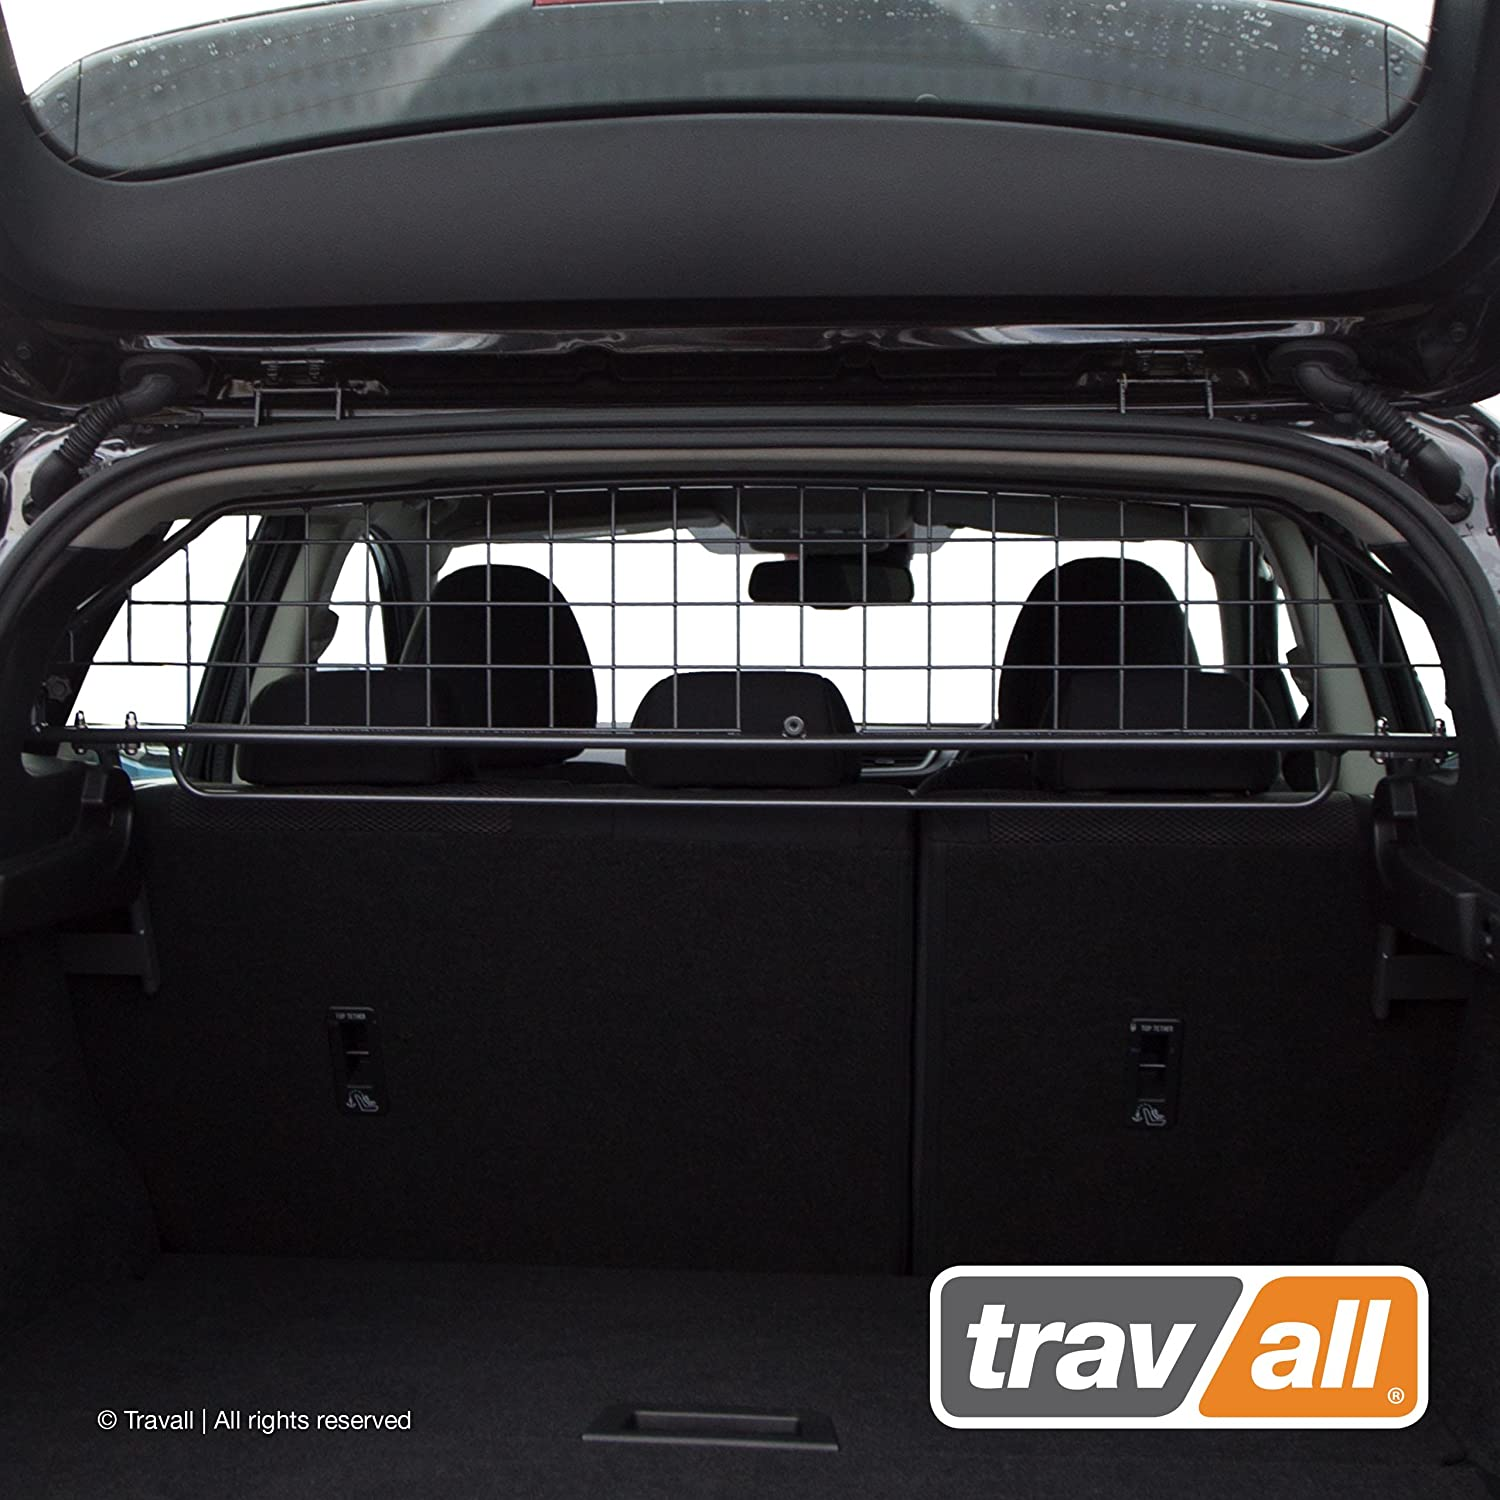 Travall Guard TDG1537 - Vehicle-Specific Dog Guard